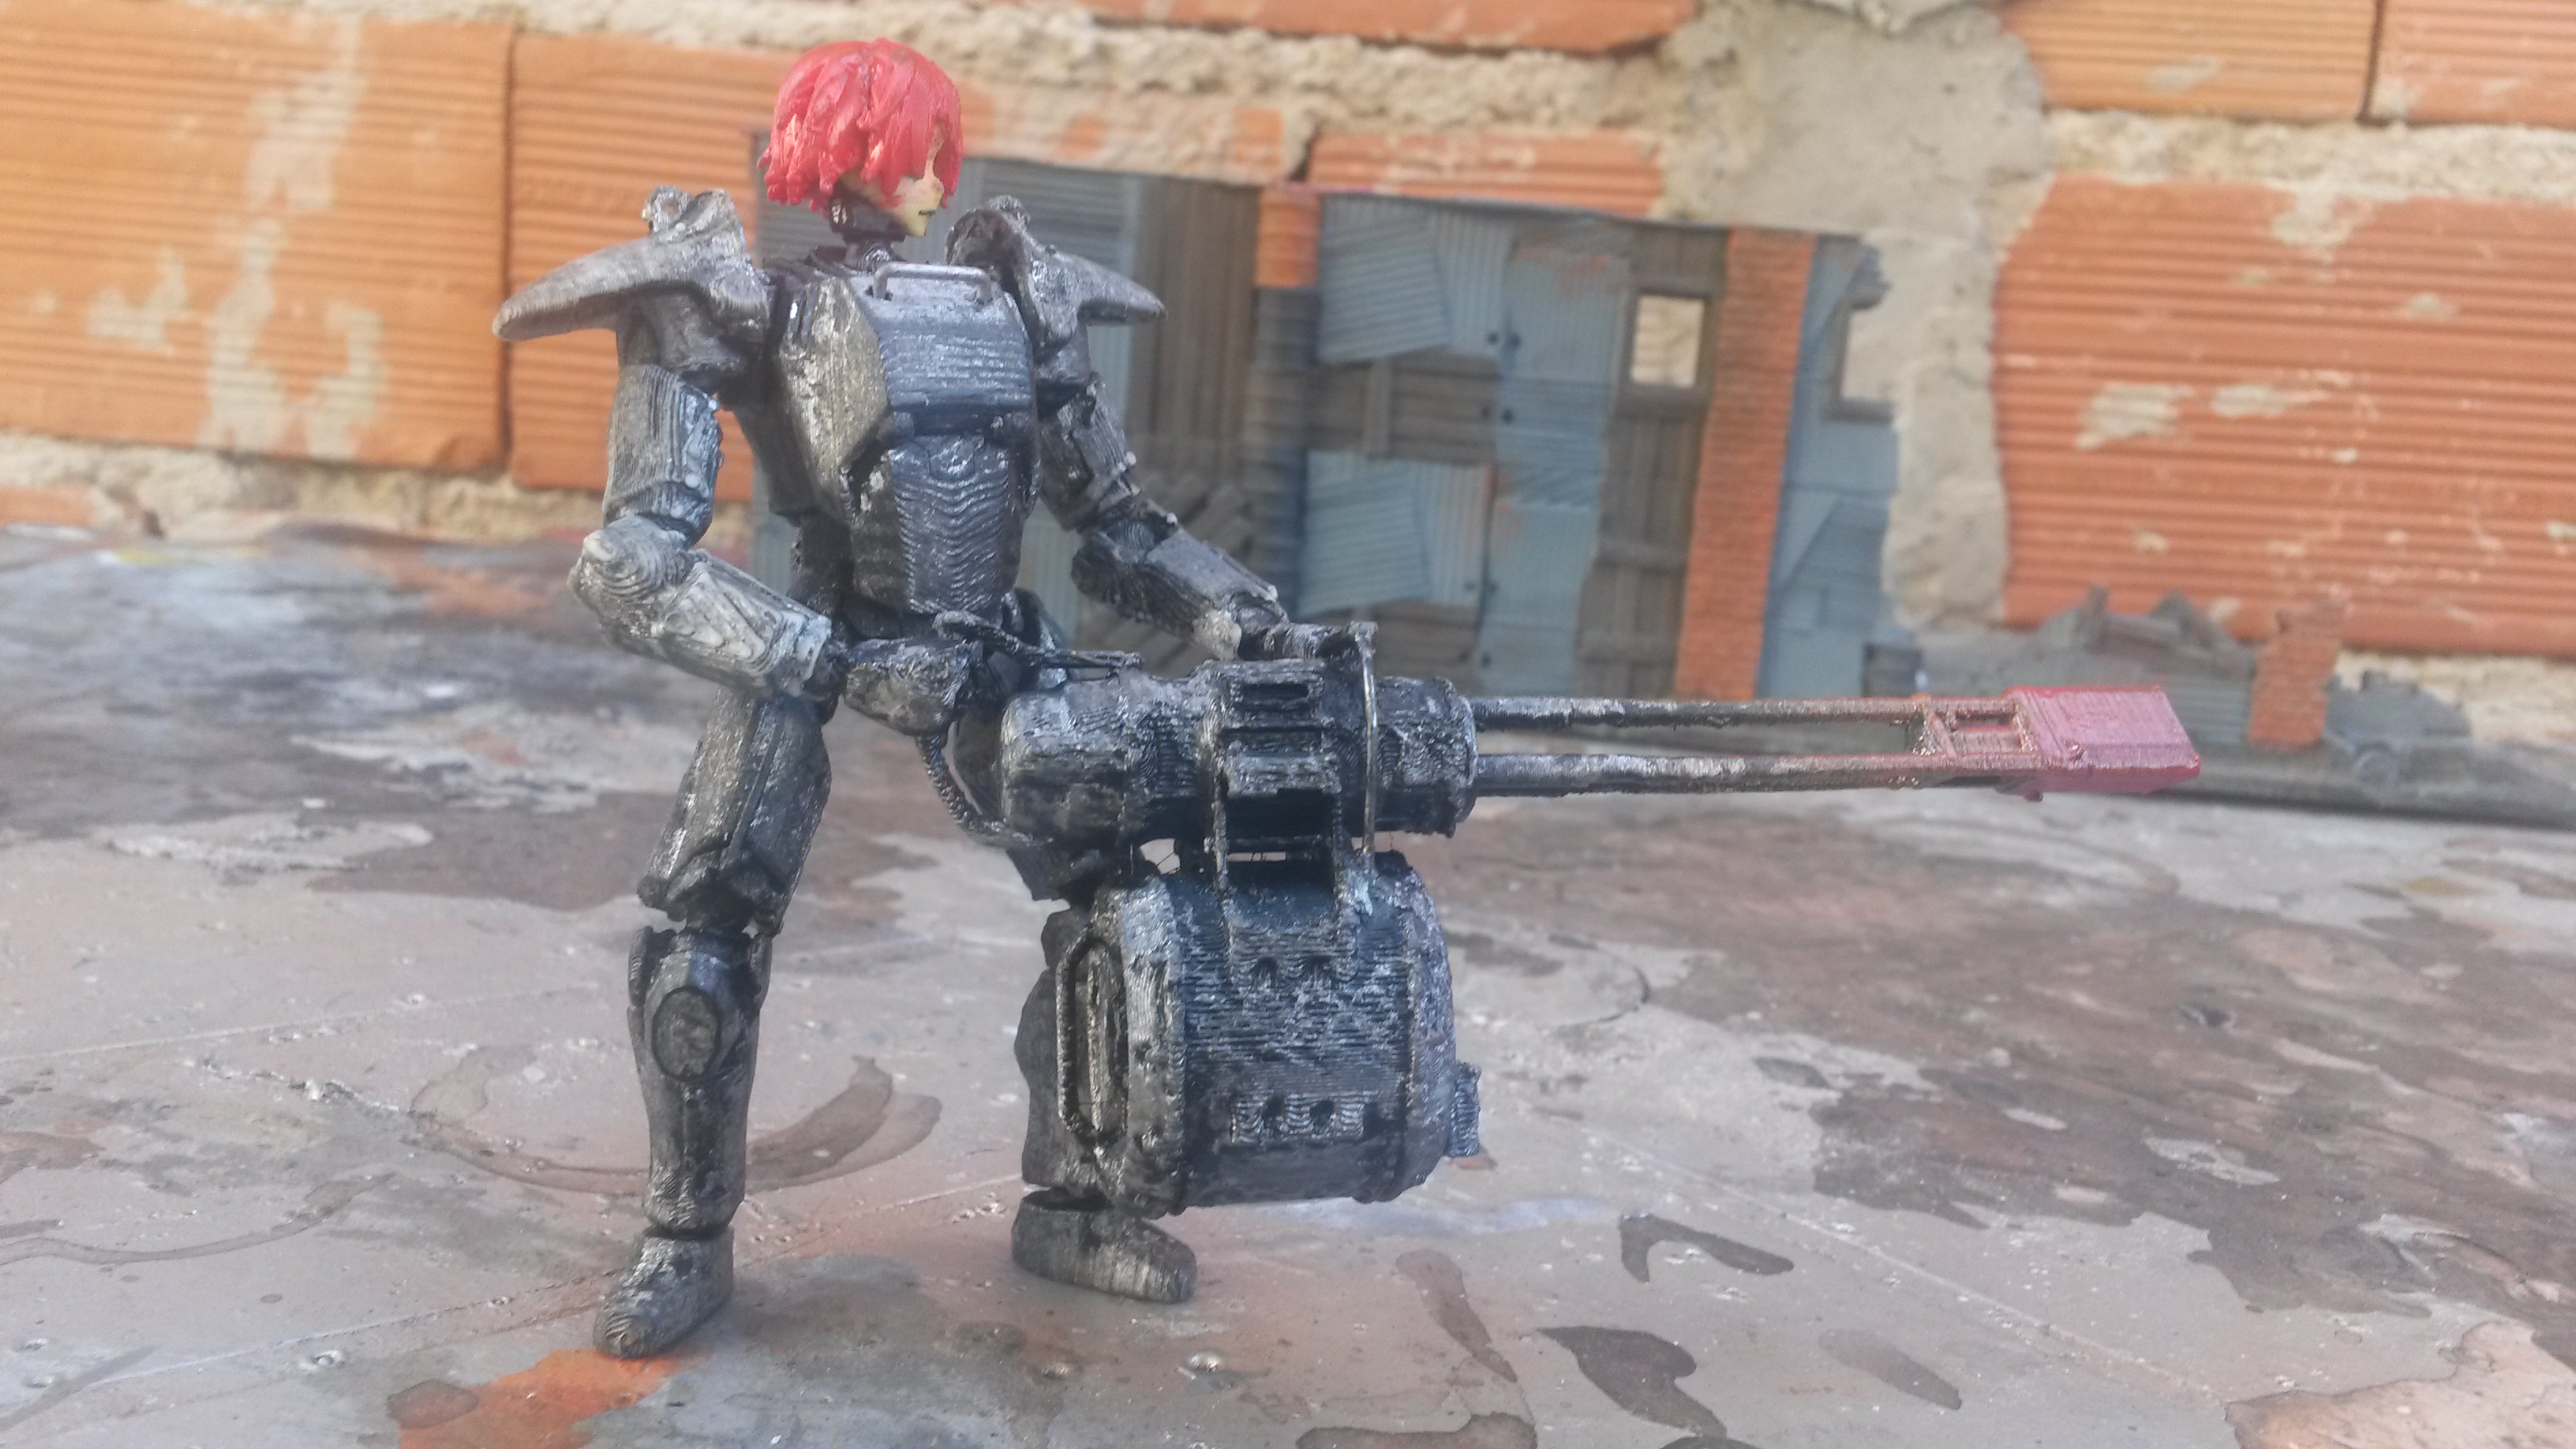 Fallout 4 Minigun for Fallout Joe